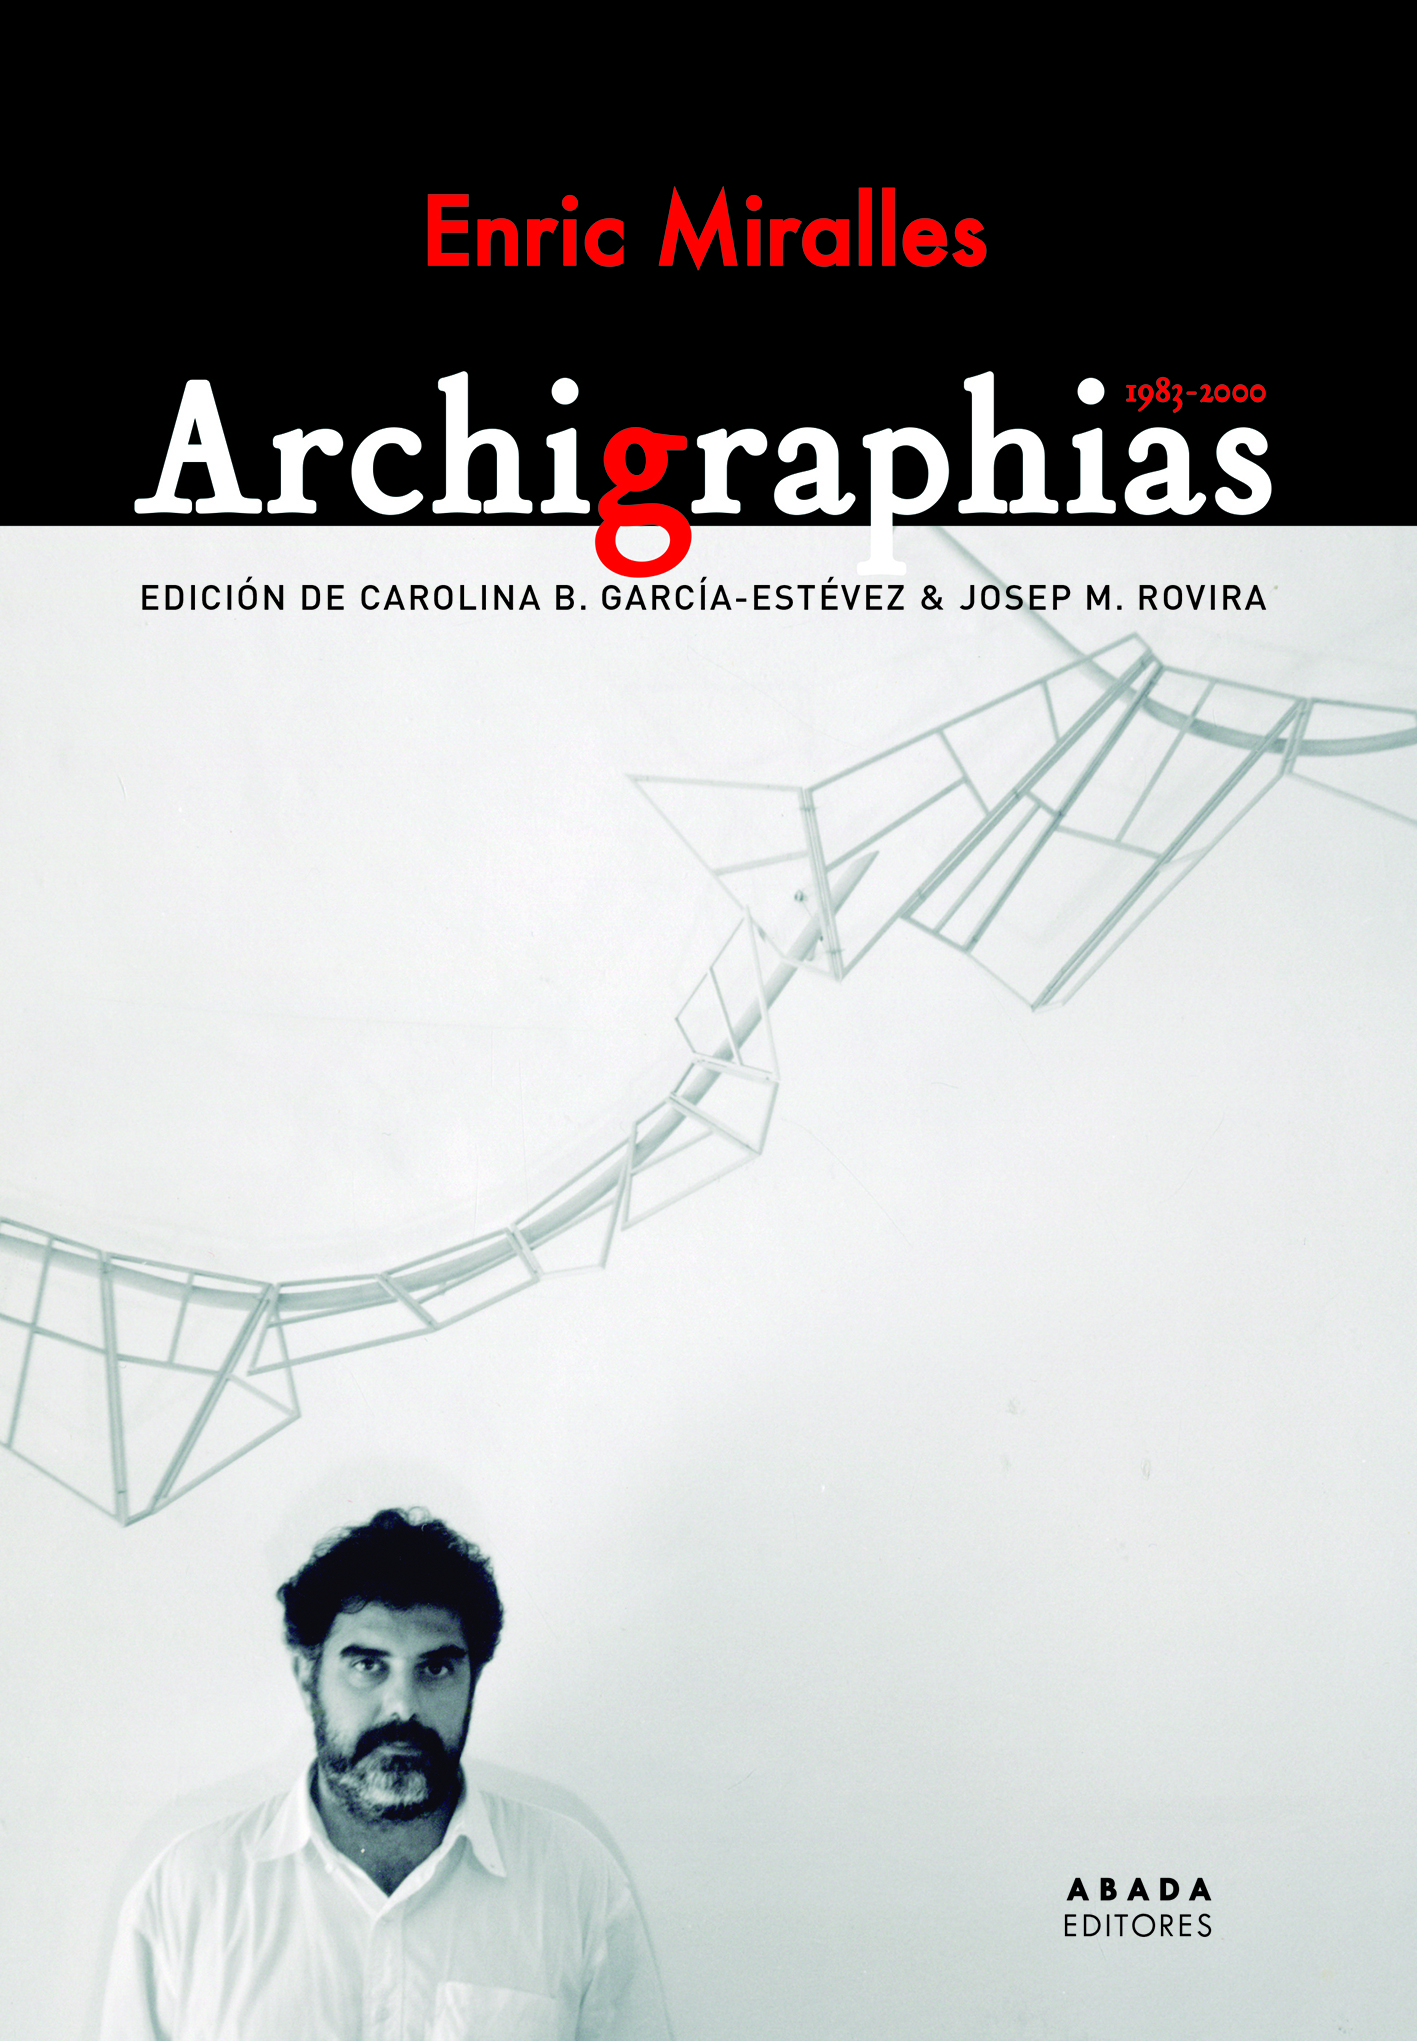 Archigraphias 1983-2000 (9788417301040)